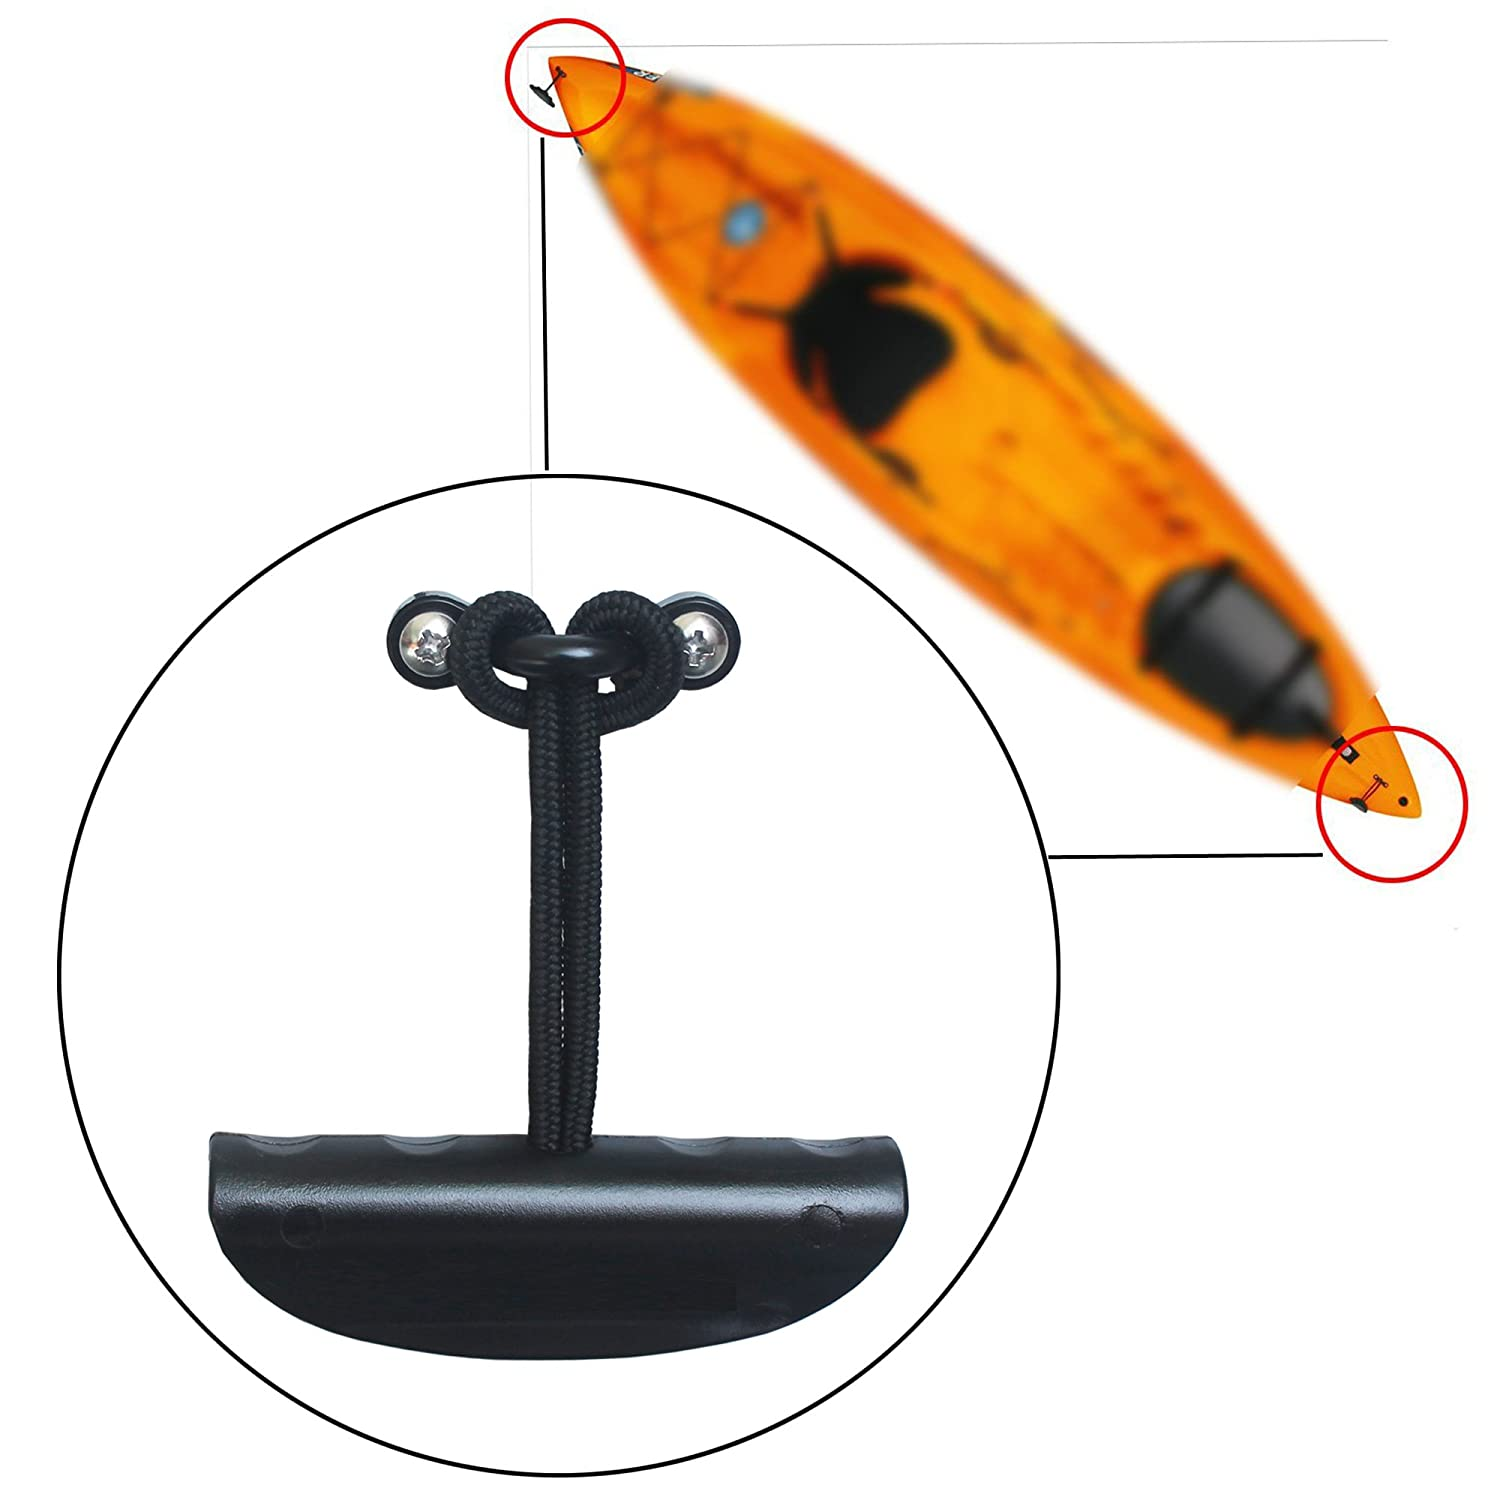 YYST Lot 2 Kayak Carry Handle Pull Handle T-handle with Cord and Pad Eyes Yi Ya Su